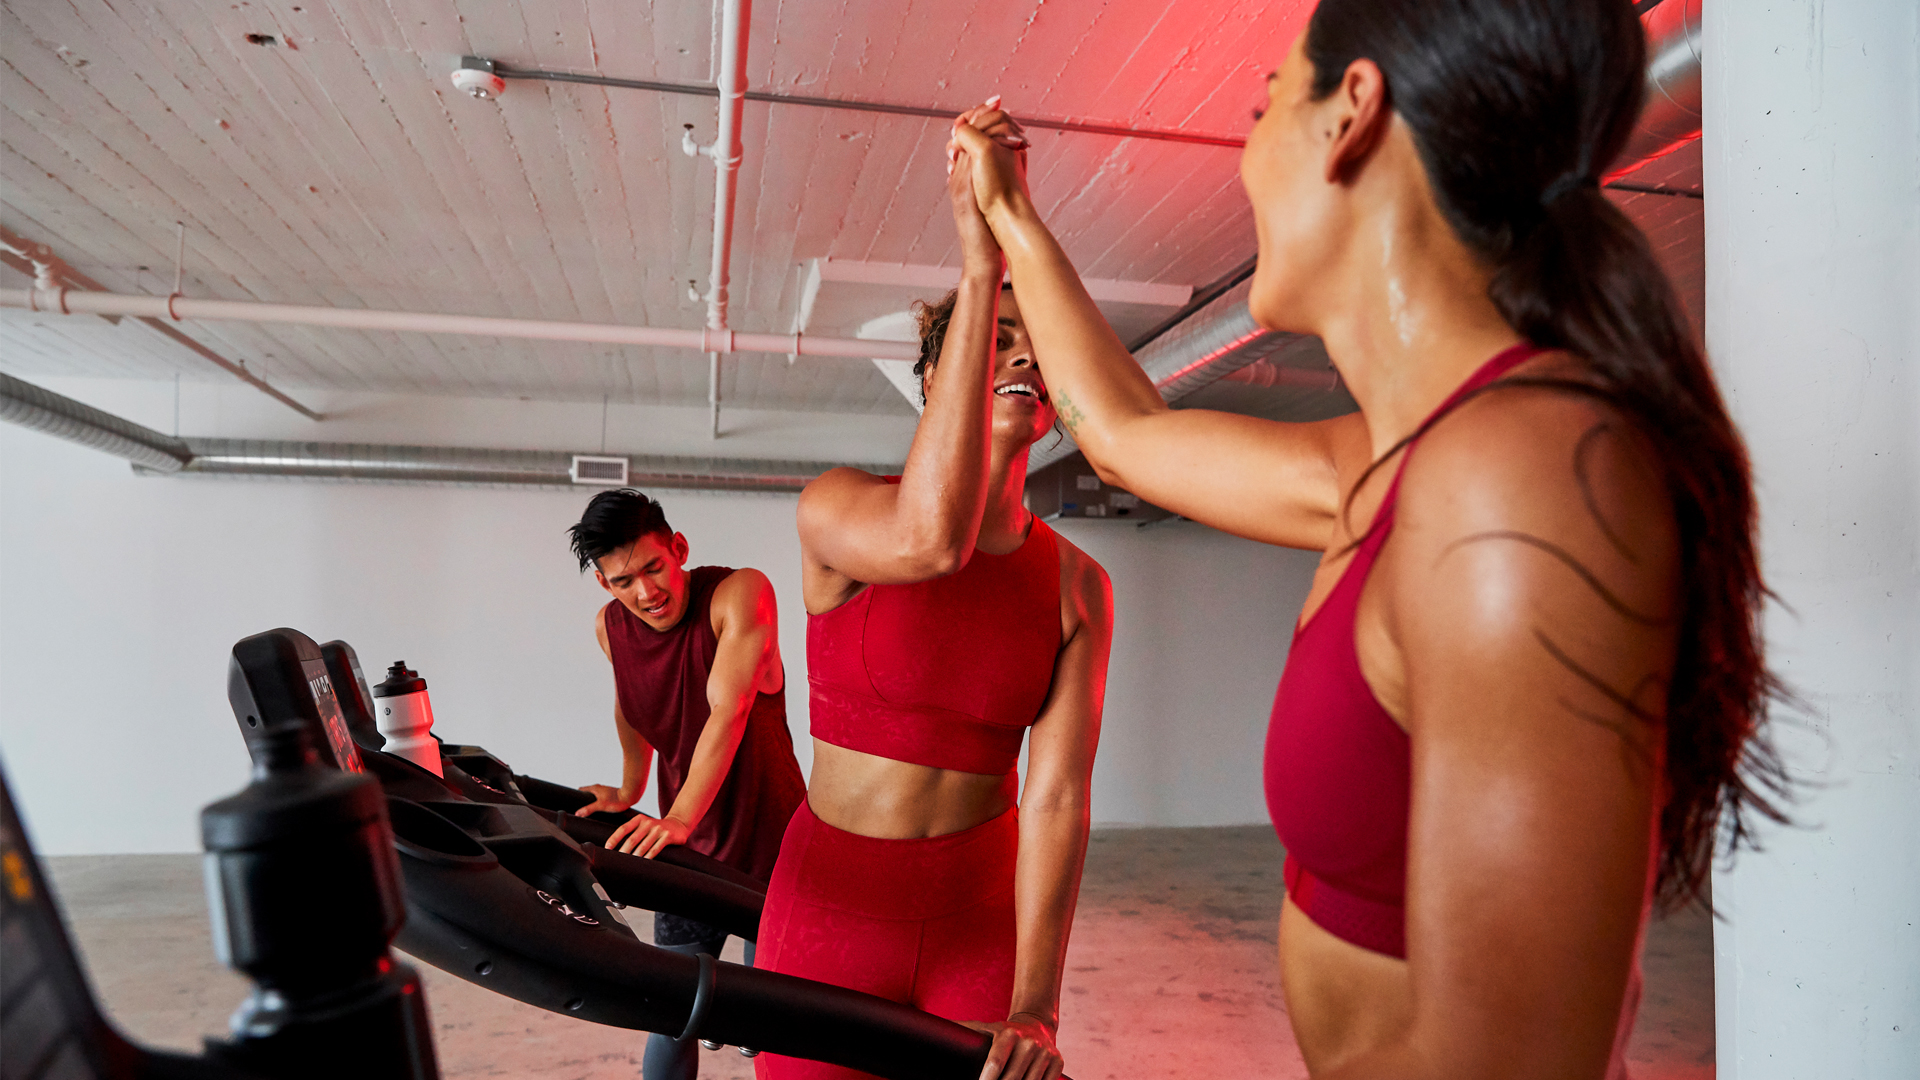 Studio photo of two woman wearing red workout clothes smiling and giving each other high fives on treadmills with tired man on treadmill behind them